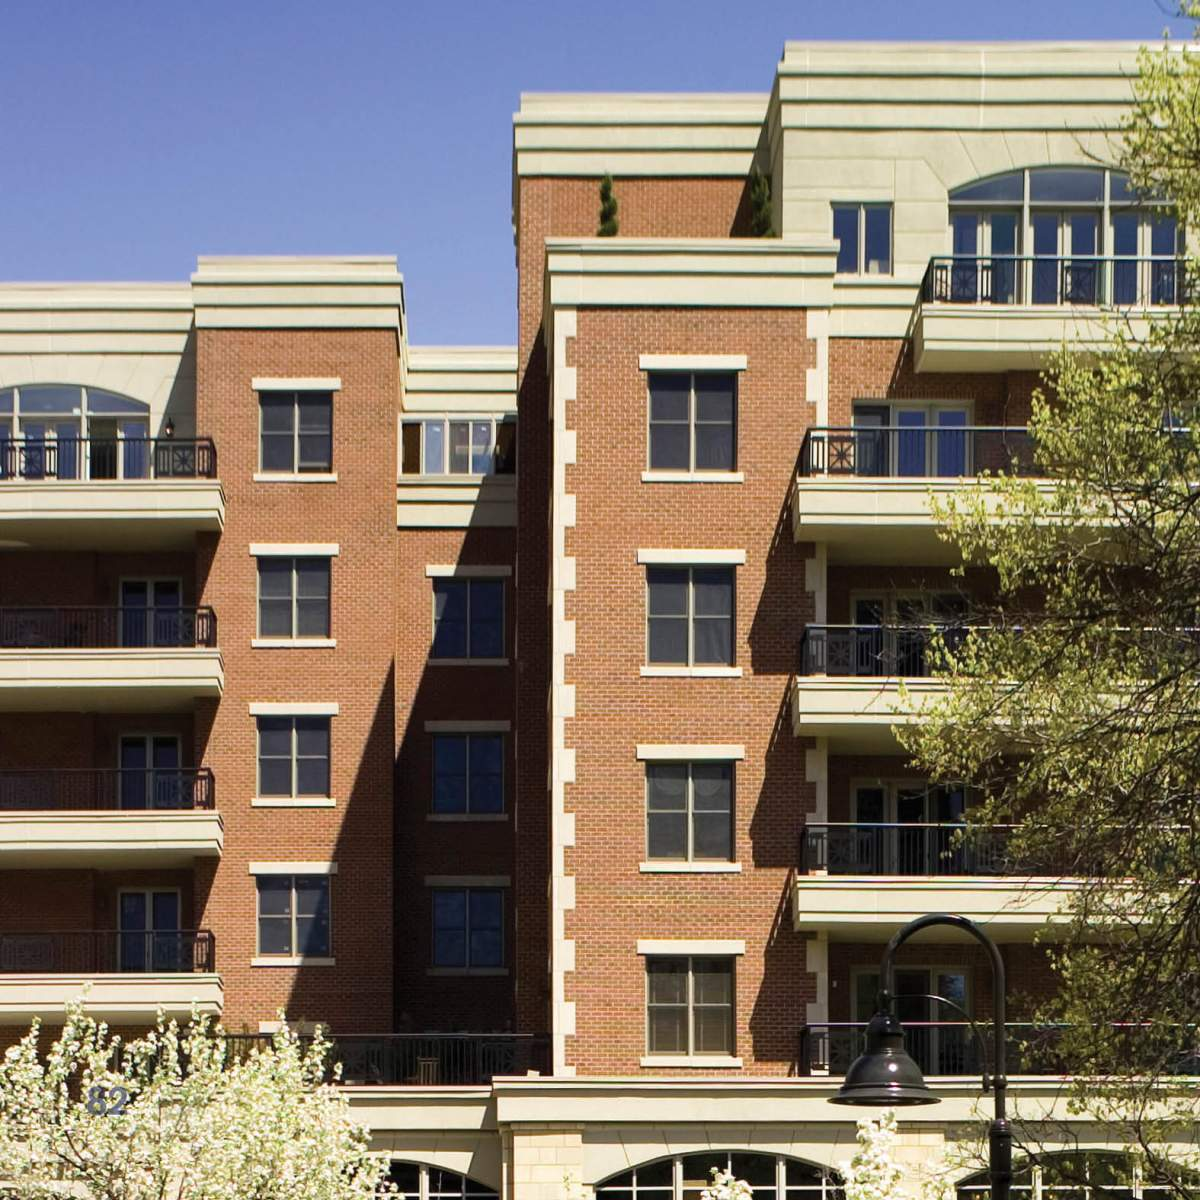 Residential Architects Rochester Ny: The Sagamore > Work > CJS Architects